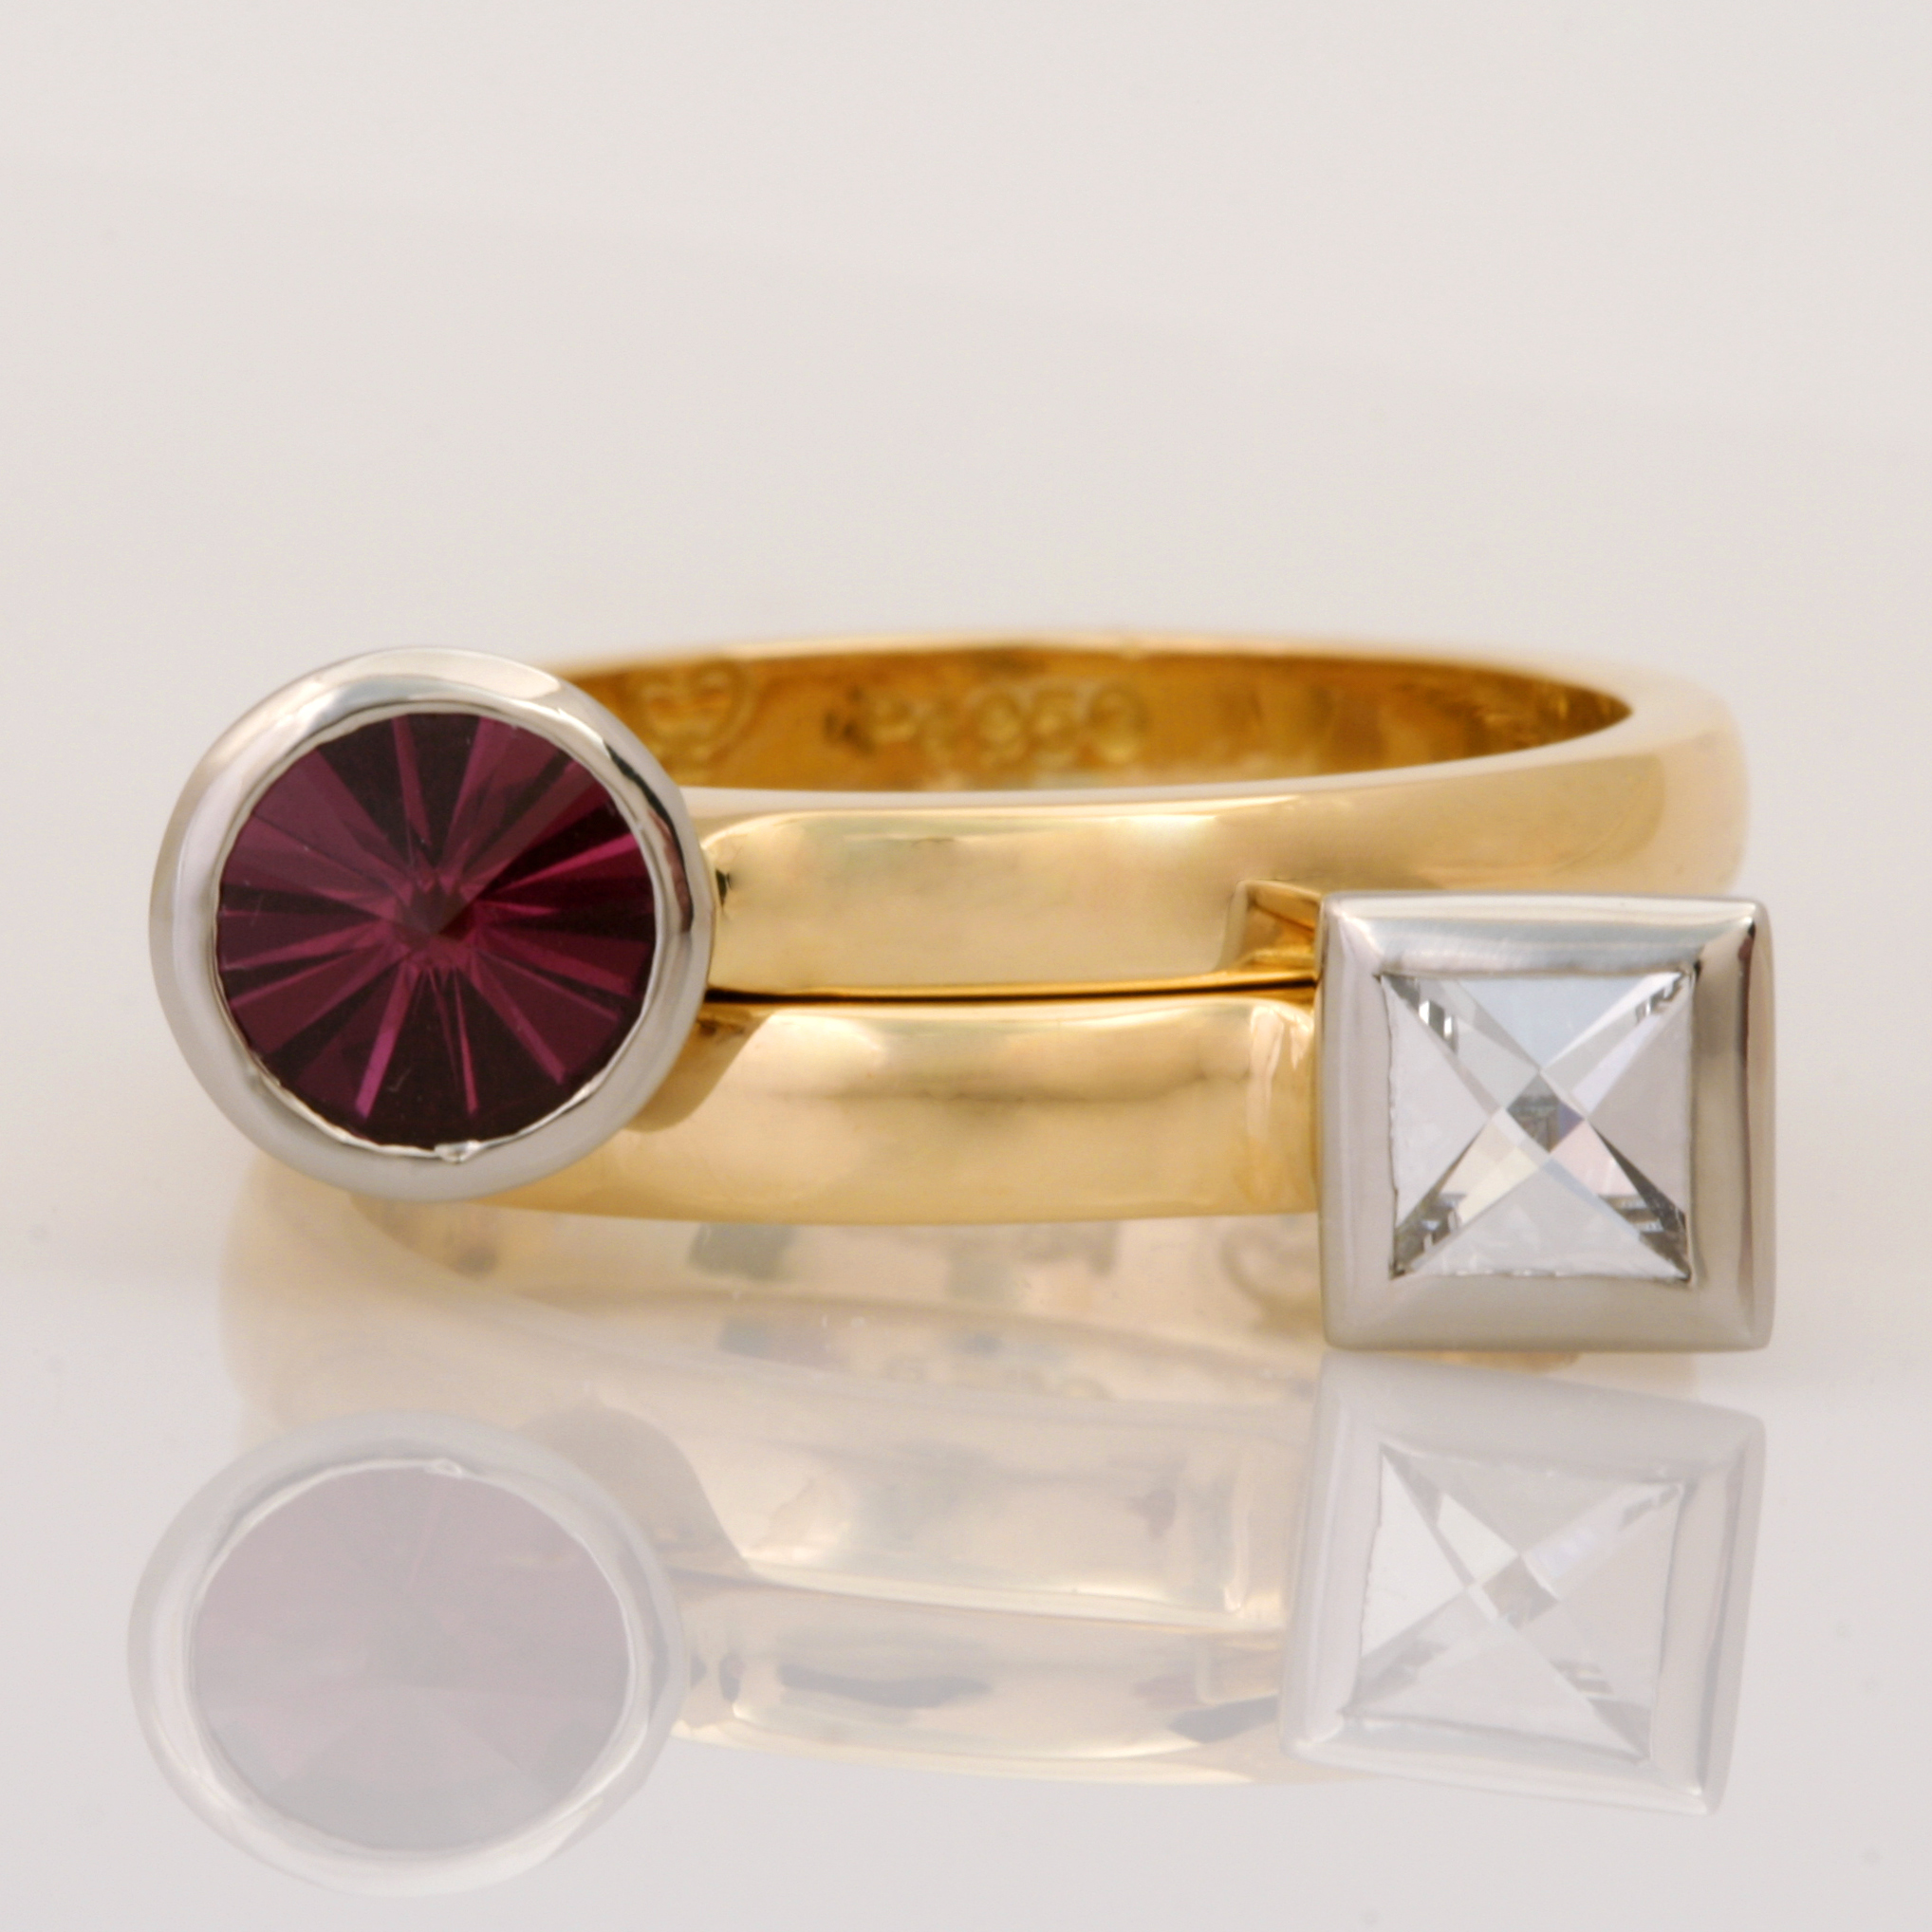 Handmade ladies 18ct yellow gold and palladium stacker rings featuring a Context cut diamond and a Spirit cut rhodolite garnet